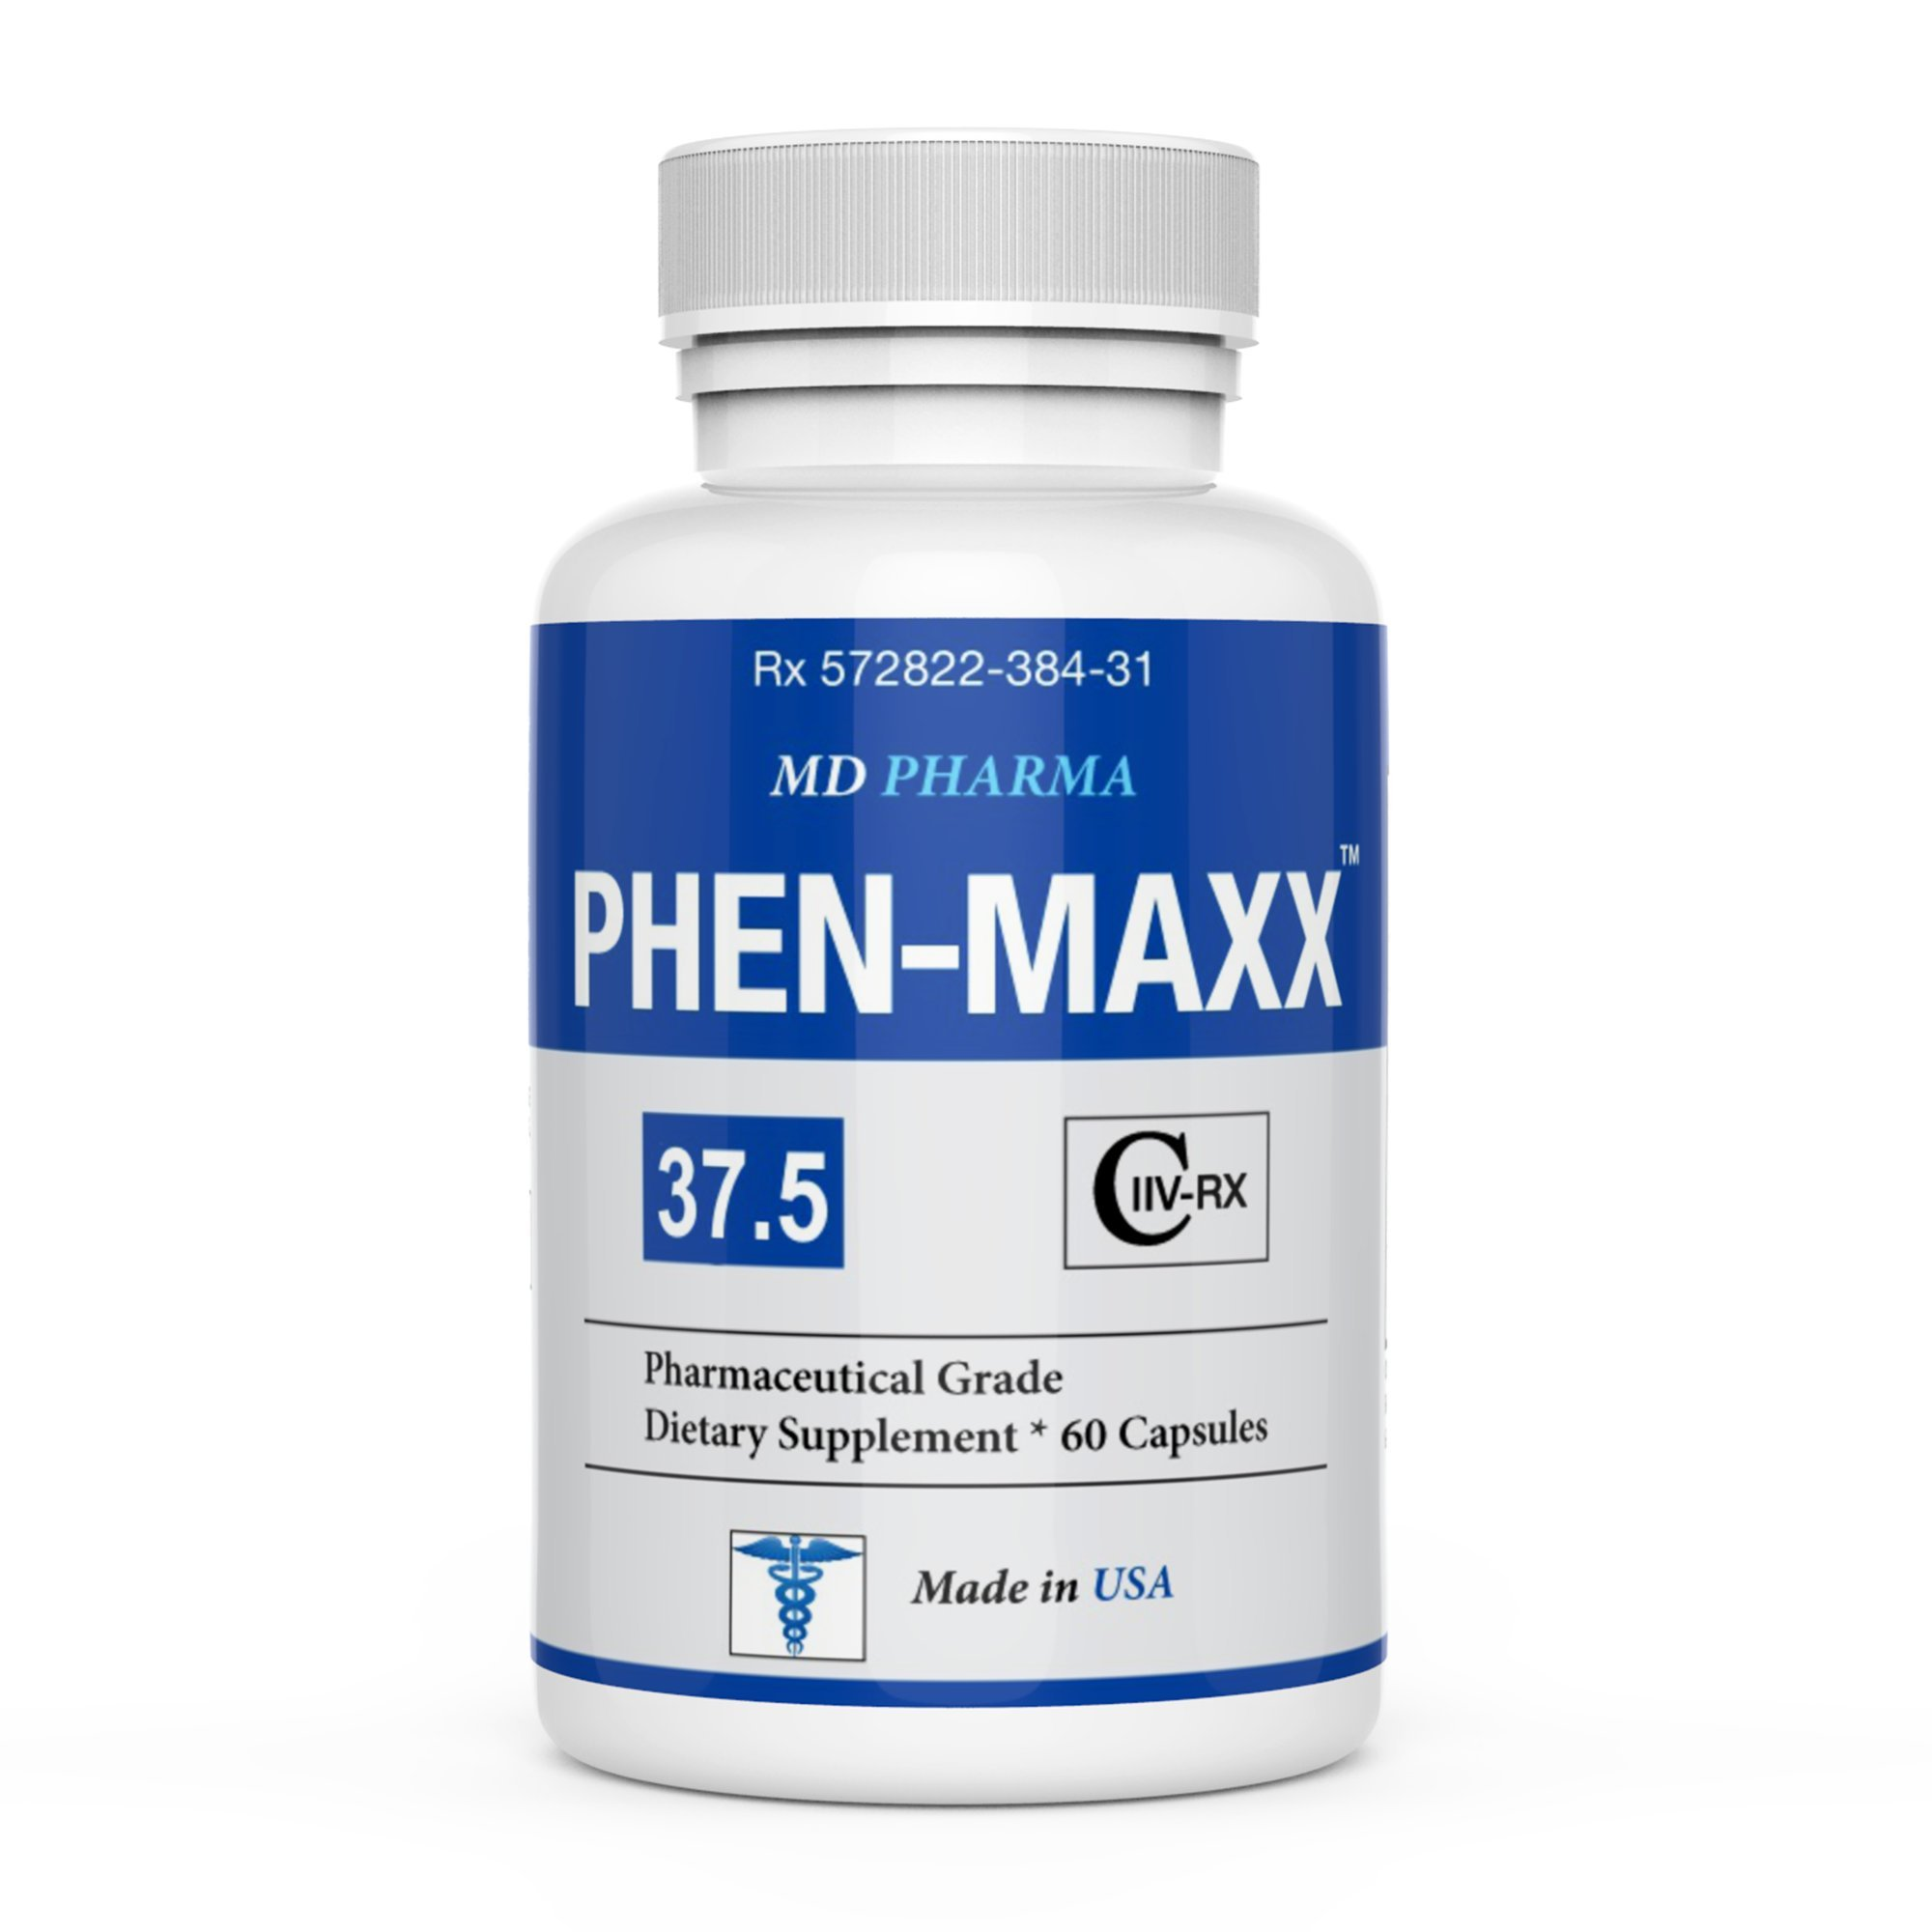 PHEN MAXX 37.5 ® - Weight Loss Pills - Fat Burner - Diet Pills - Appetite Suppressant - Diet Pills That Work Fast for Women and Men - Carb Block - Keto Friendly by PHEN MAXX 37.5 - Appetite Suppressant & Fat Burner